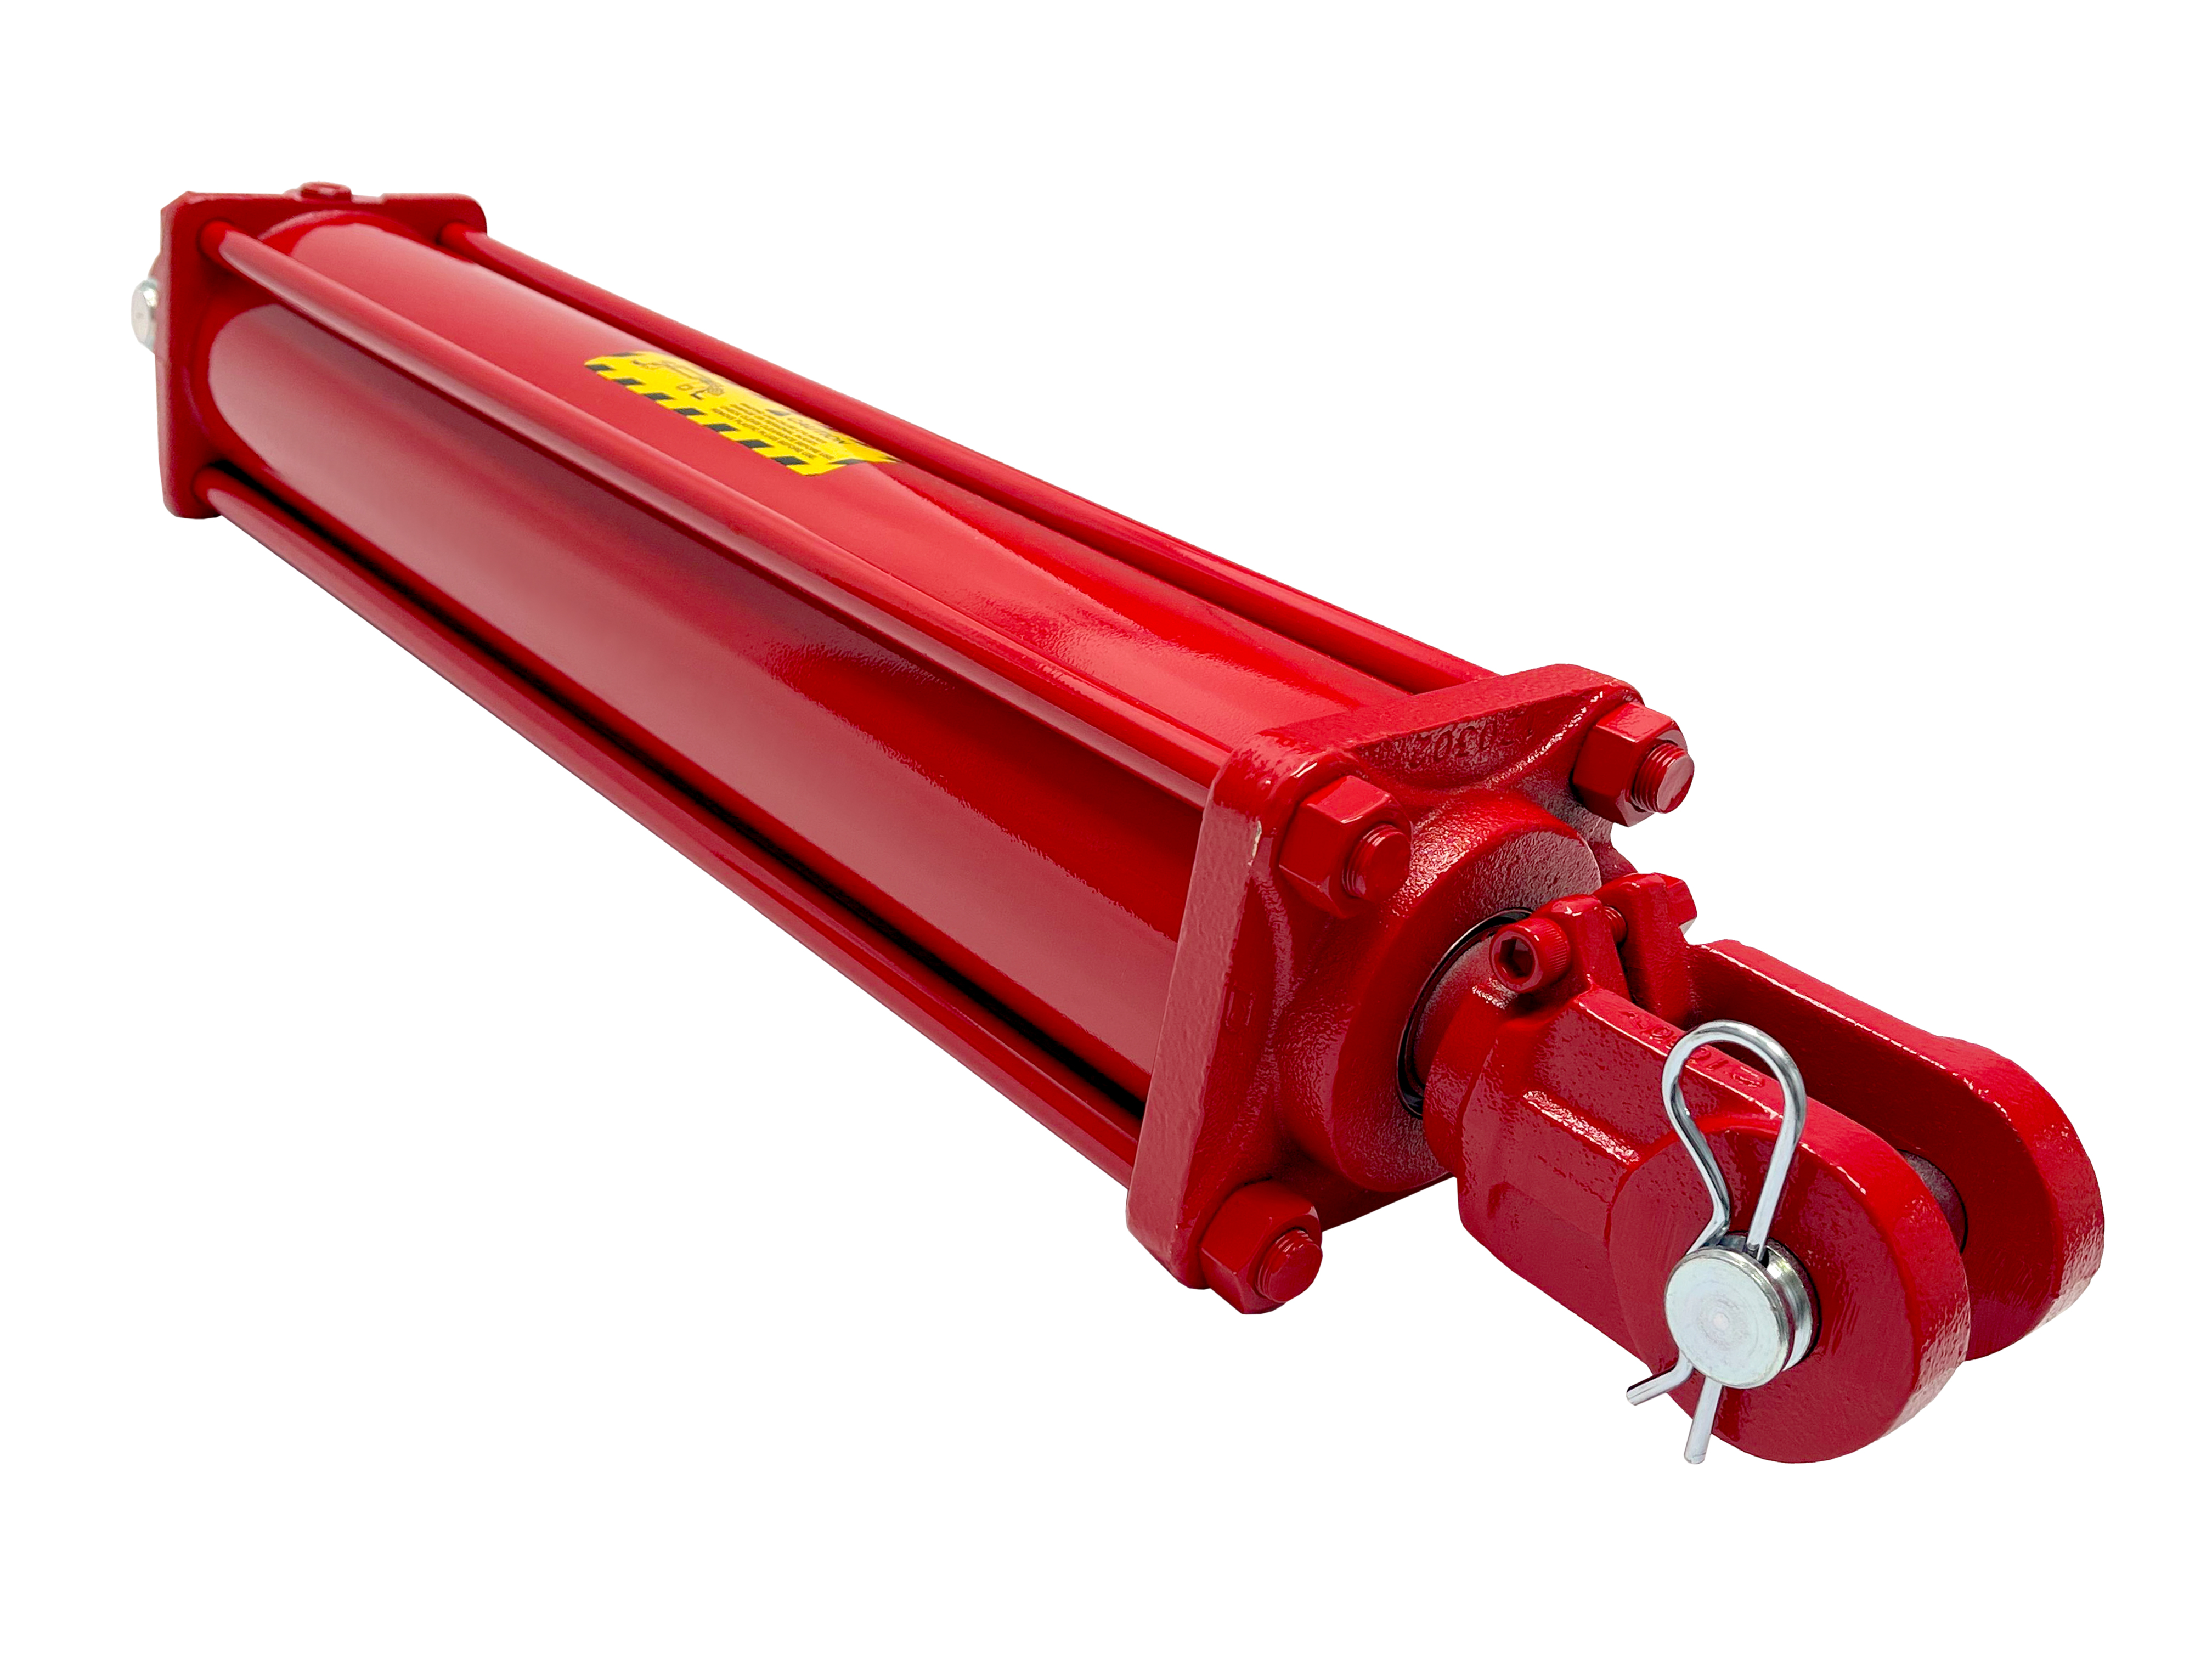 4 bore x 22 stroke CROSS hydraulic cylinder, tie rod double acting cylinder DB series   CROSS MANUFACTURING